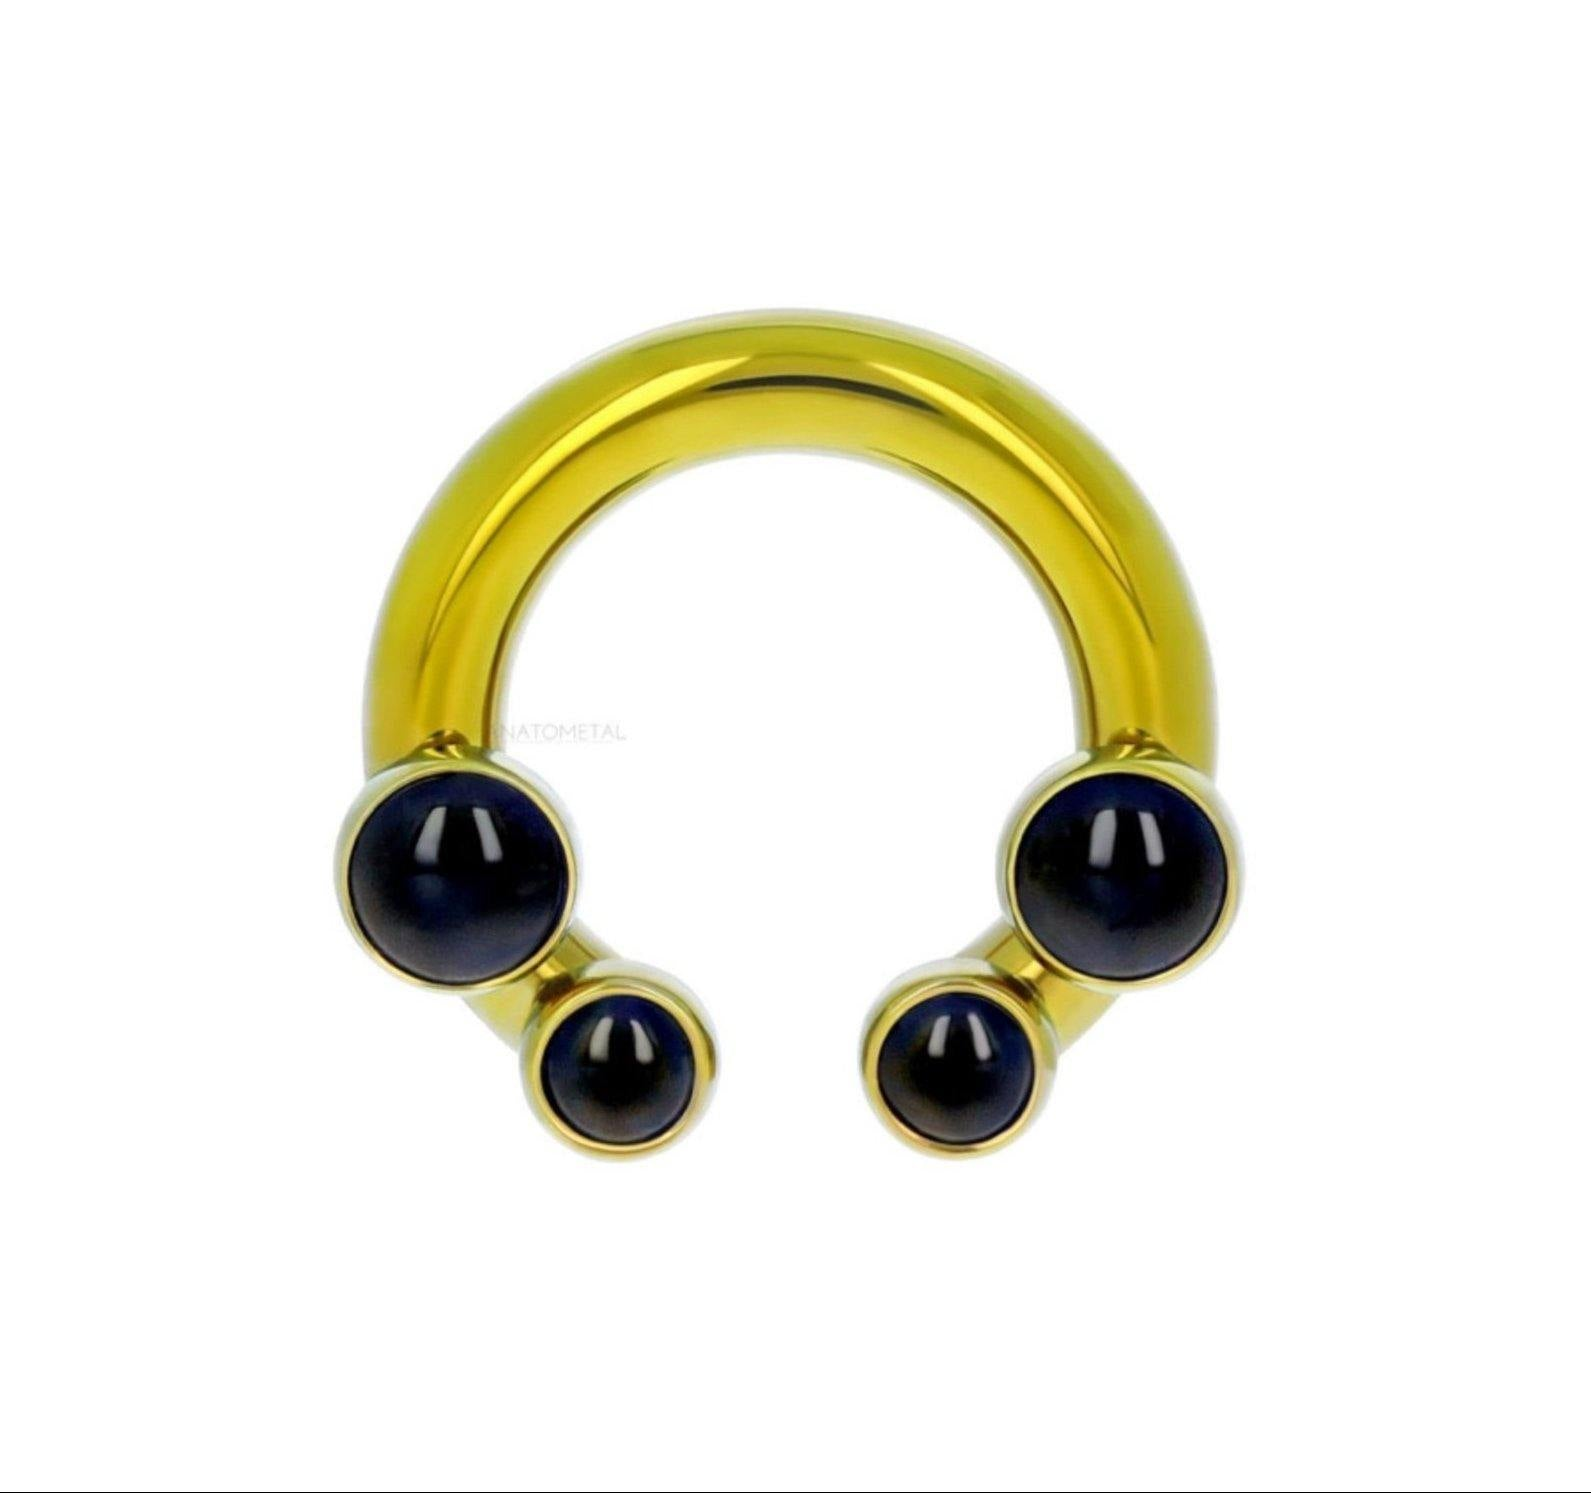 Ti Front set Circular Bar 4 Threads (Shaft Only) - Isha Body Jewellery